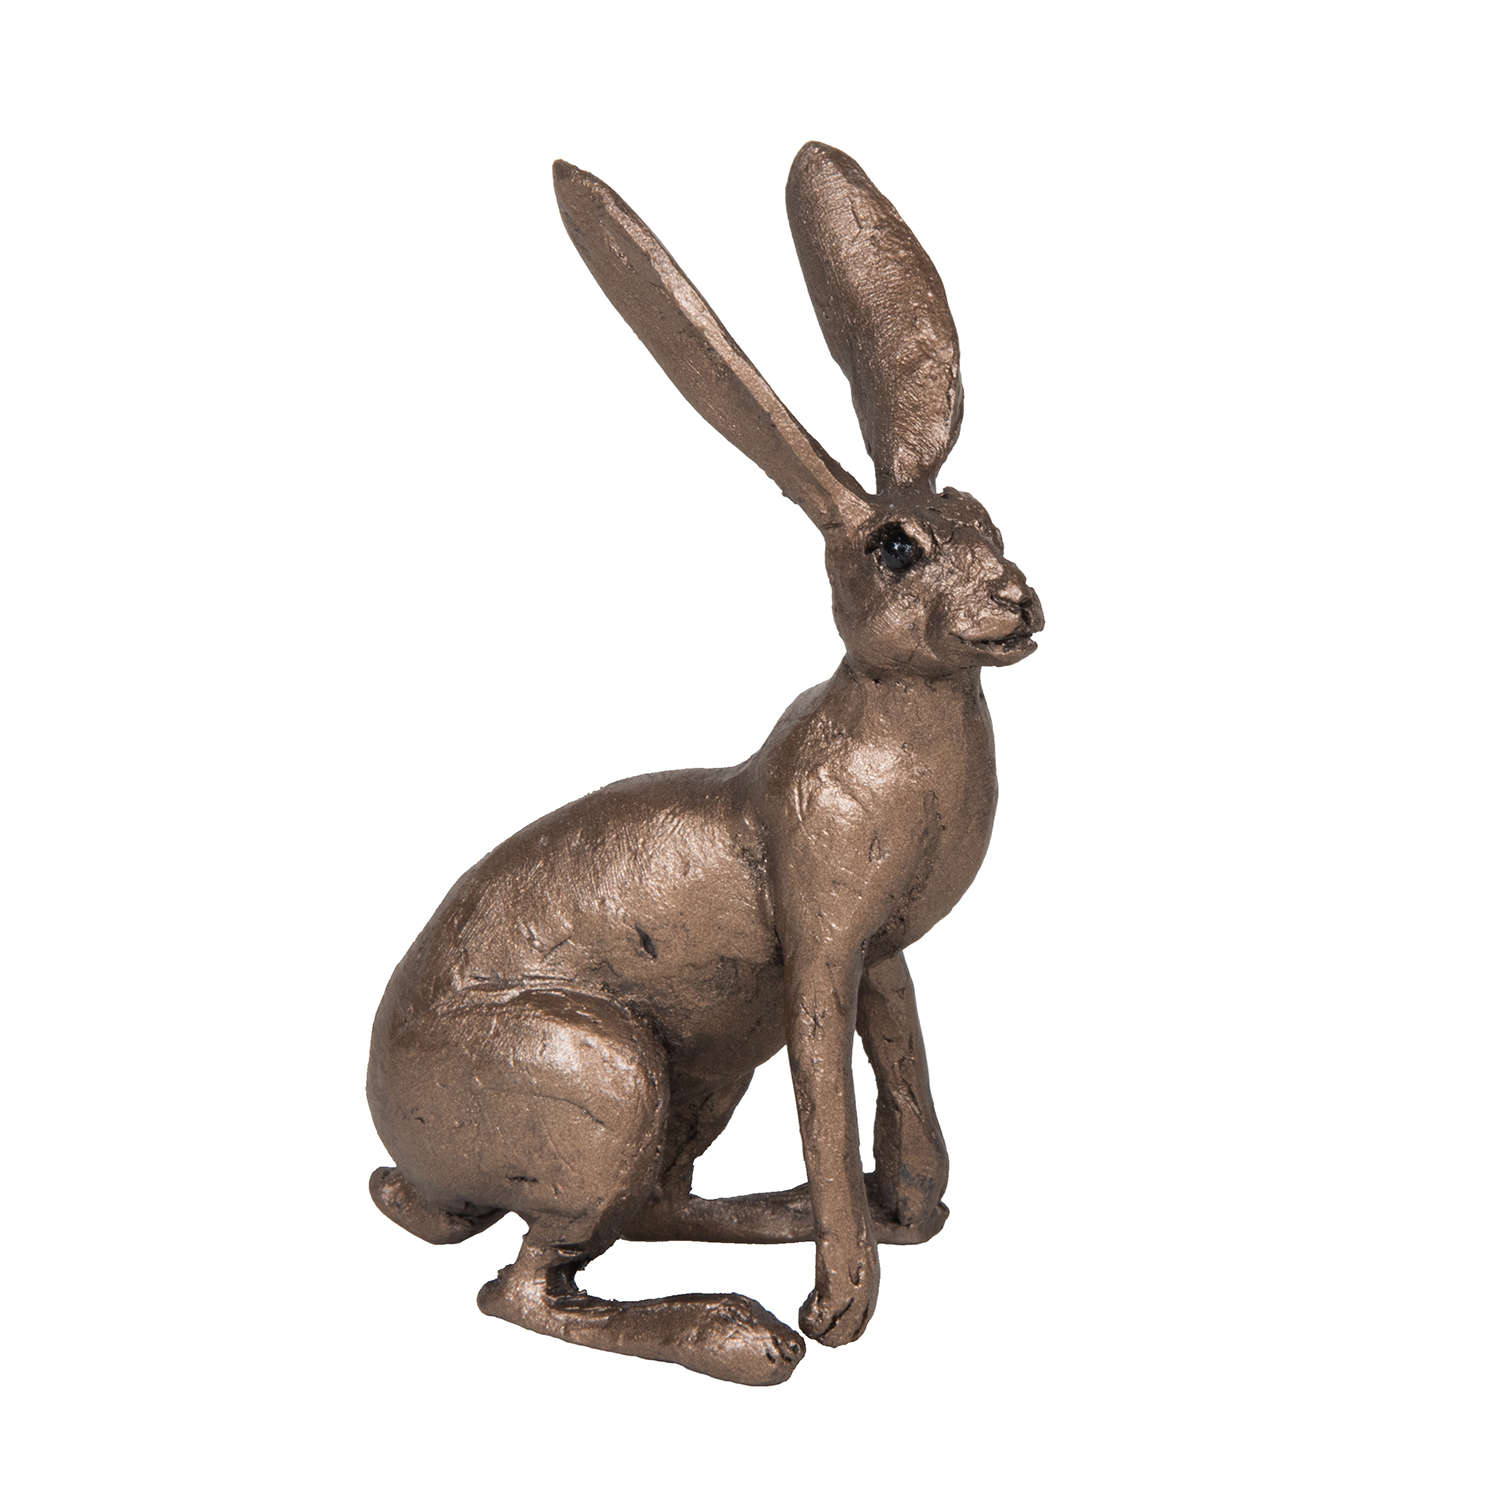 Frith Sculpture – Jan – Hare Alert in Bronze Resin by Thomas Meadows in Gift Box